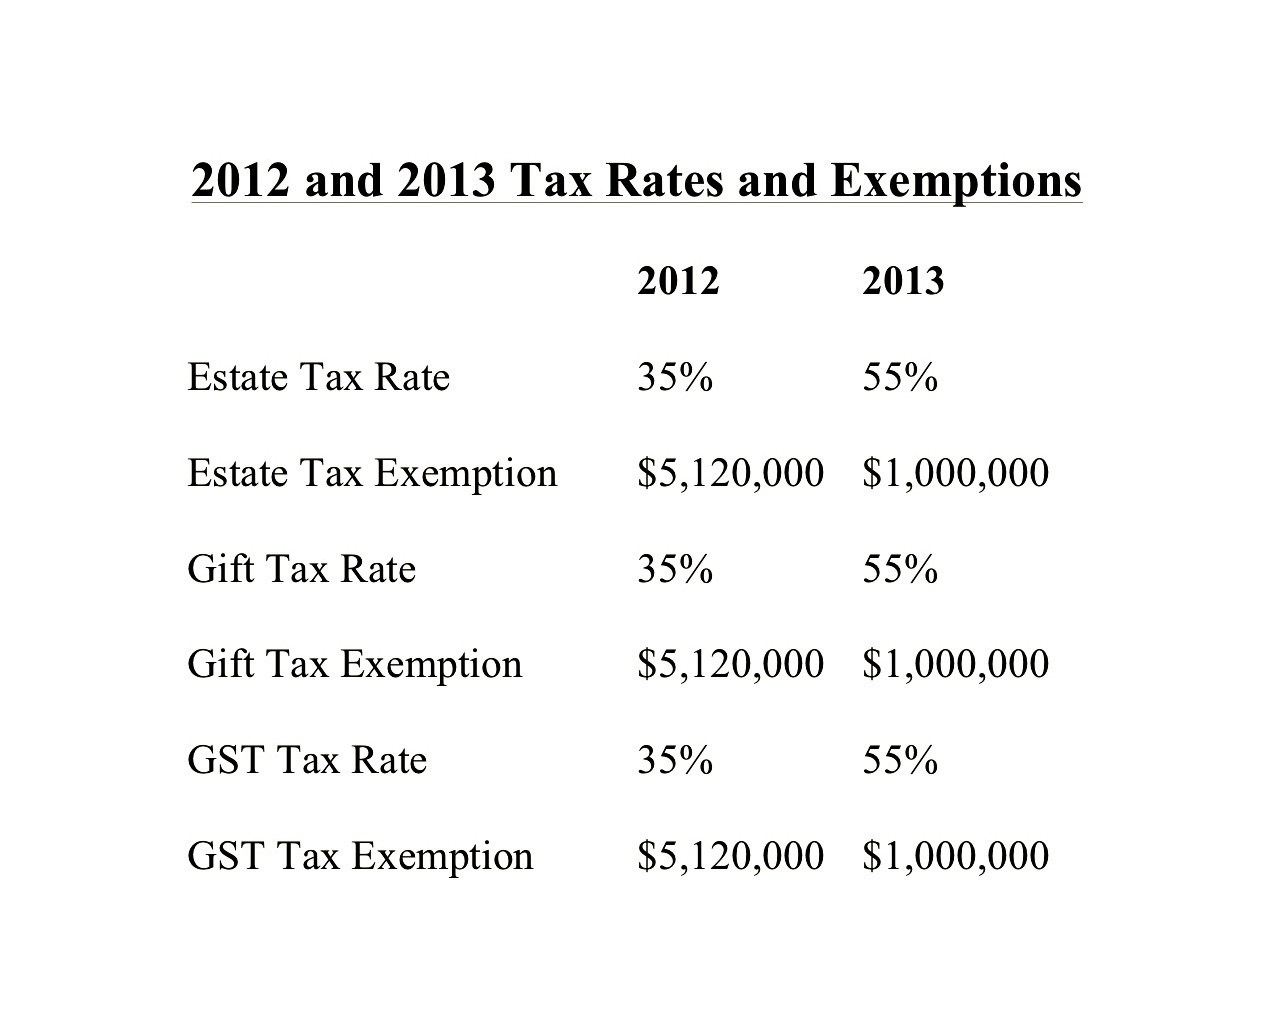 McManus & Associates | Gift Tax Exemption Will Not Likely Be ...